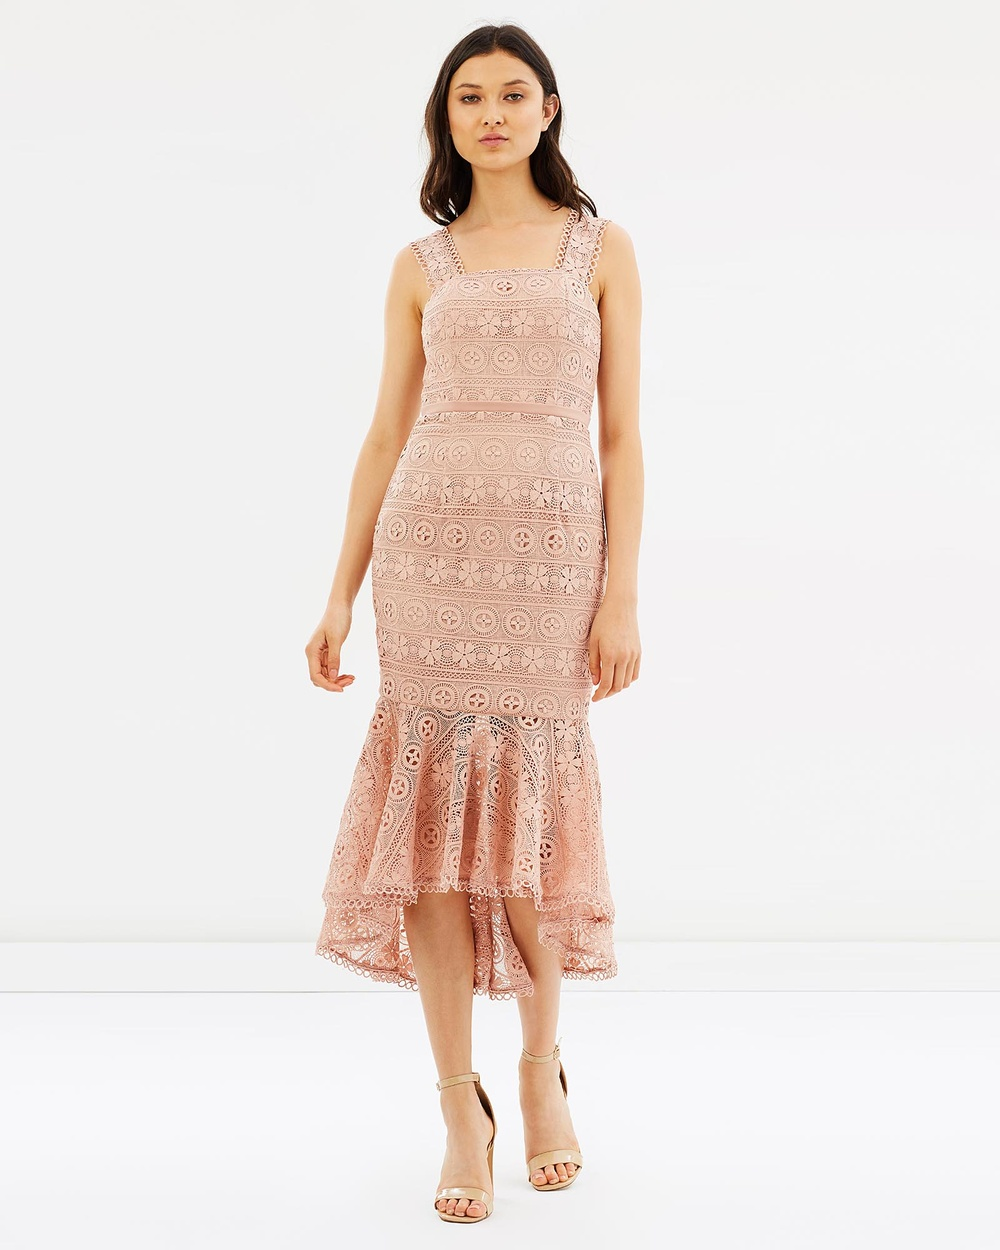 Love Honor Katerina Lace Dress Dresses Blush Katerina Lace Dress